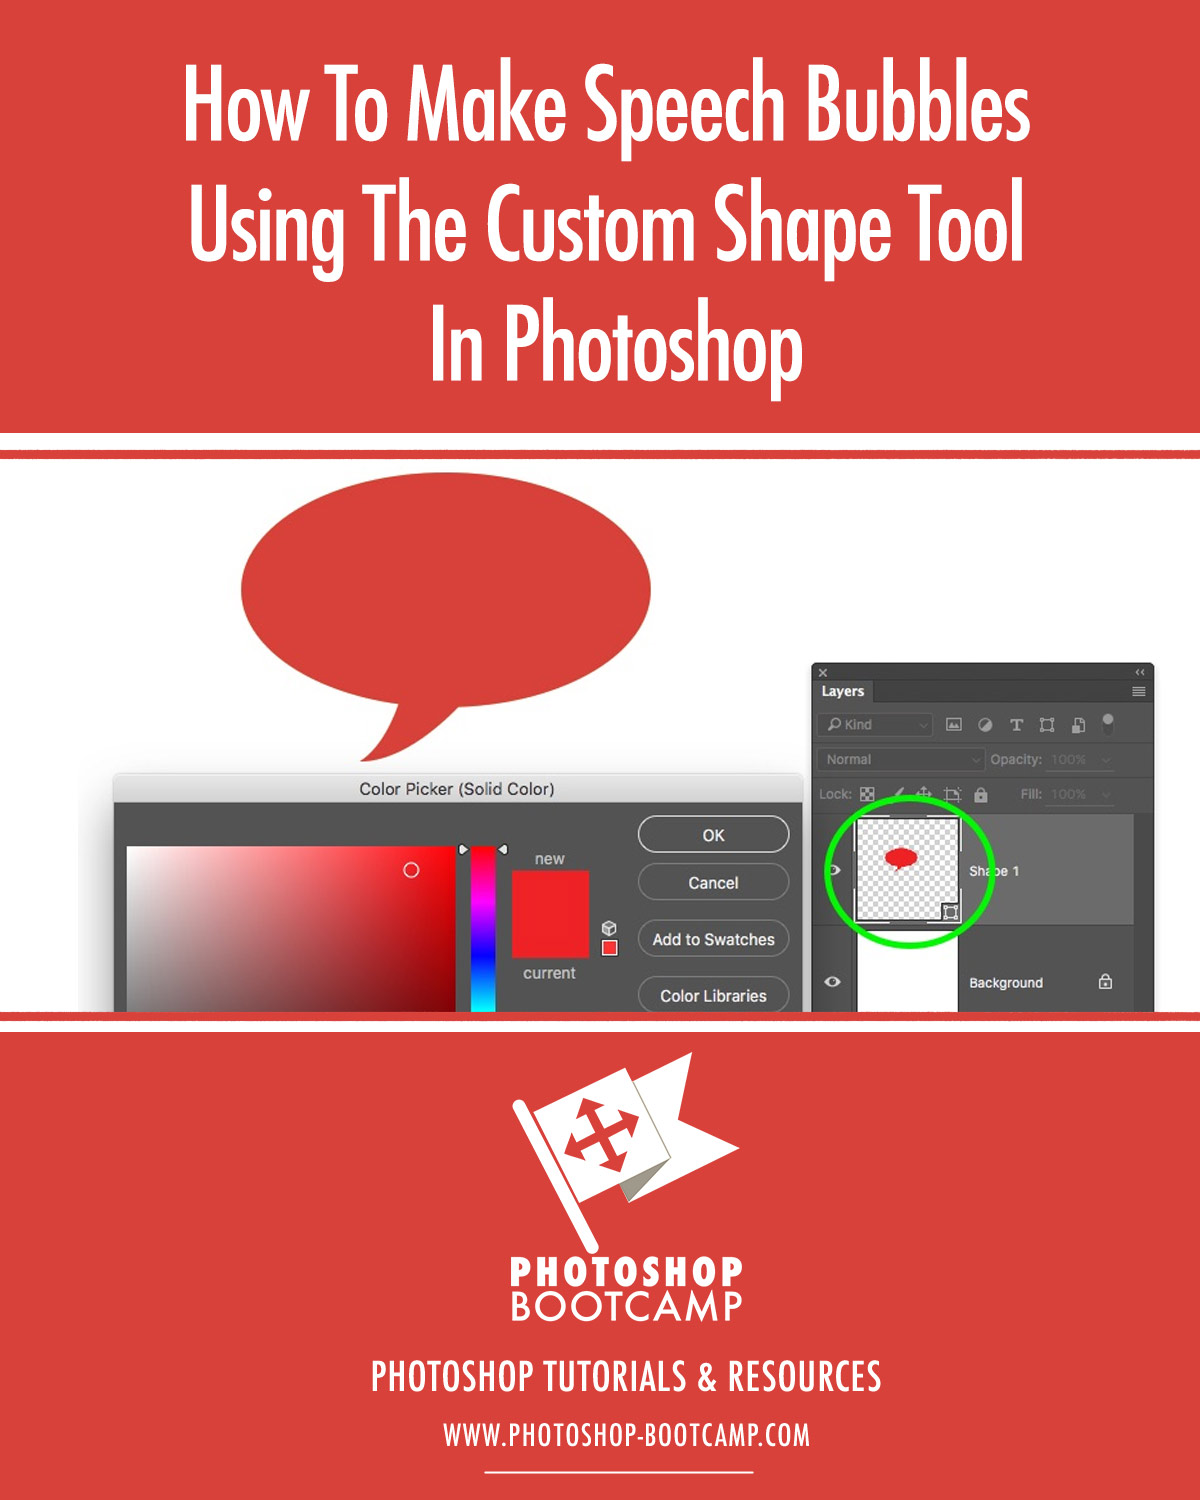 Robust Photoshop Elements 13 Photoshop How To Draw A Line Photoshop Bootcamp How To Make Speech Bubbles Using Custom Shape Tool How To Make Speech Bubbles Using Custom Shape Tool Photoshop Cs5 How To dpreview How To Draw A Line In Photoshop